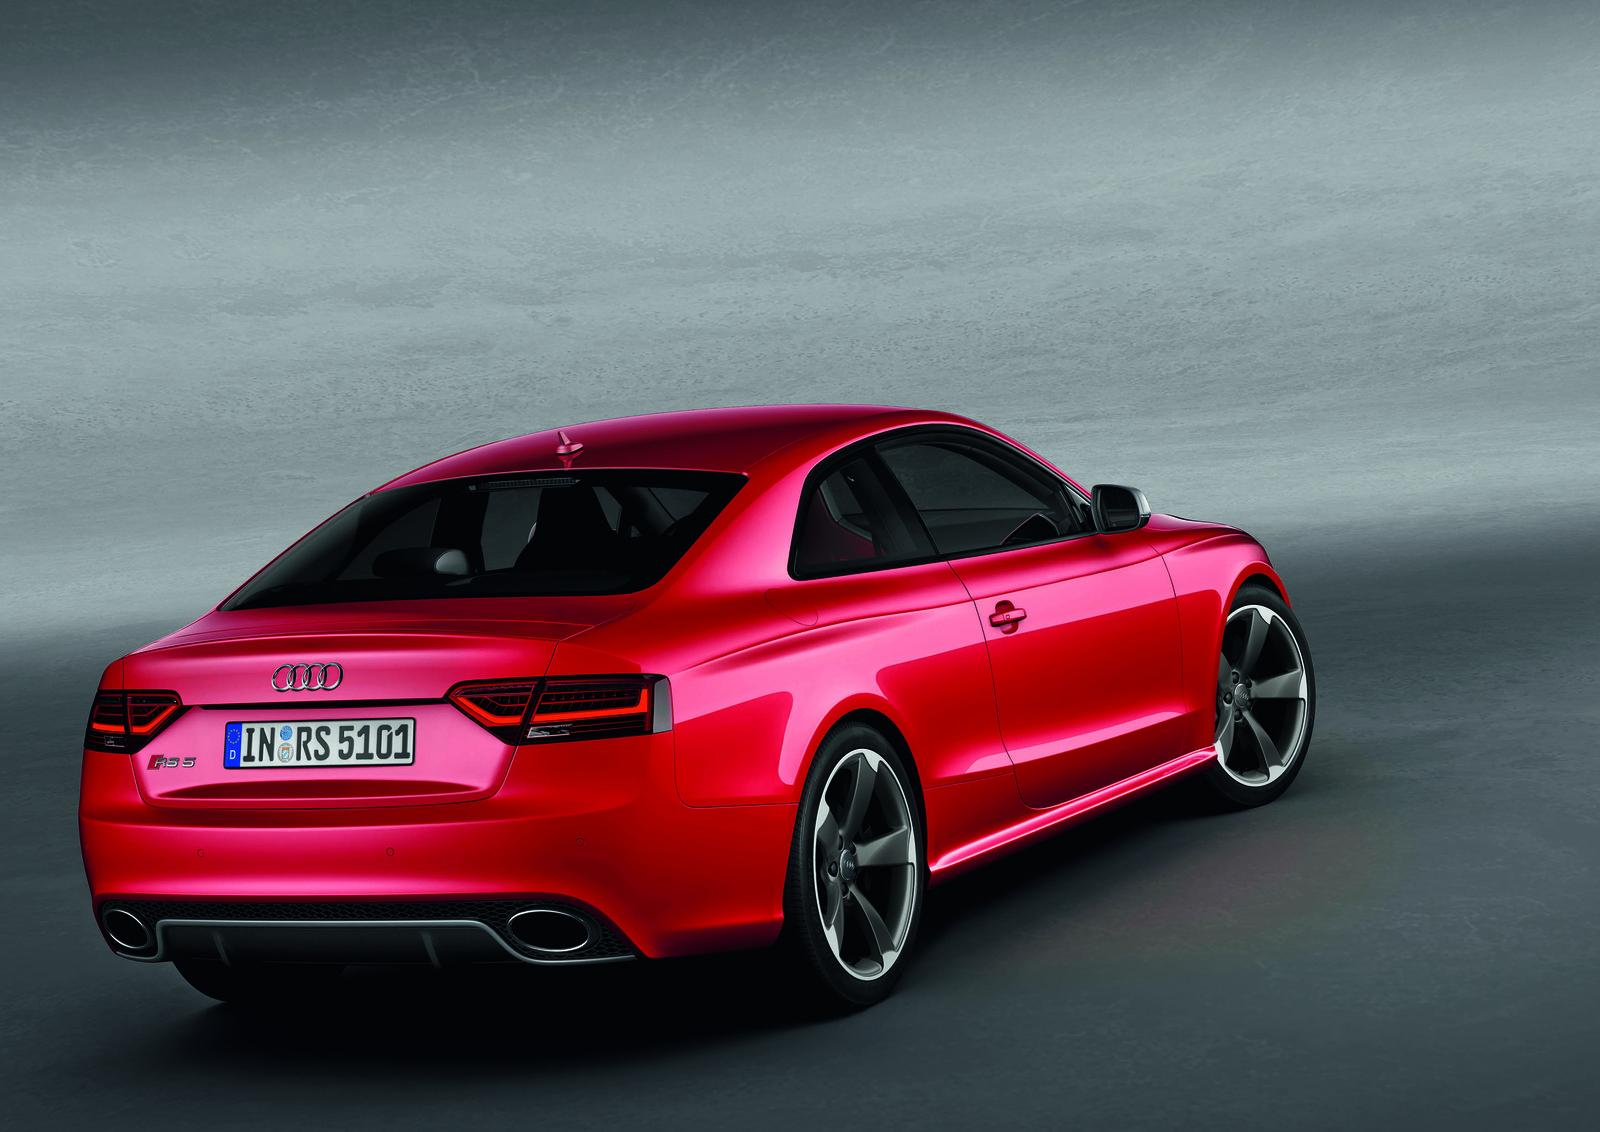 2012 audi rs5 coupe with v8 powerplant. Black Bedroom Furniture Sets. Home Design Ideas